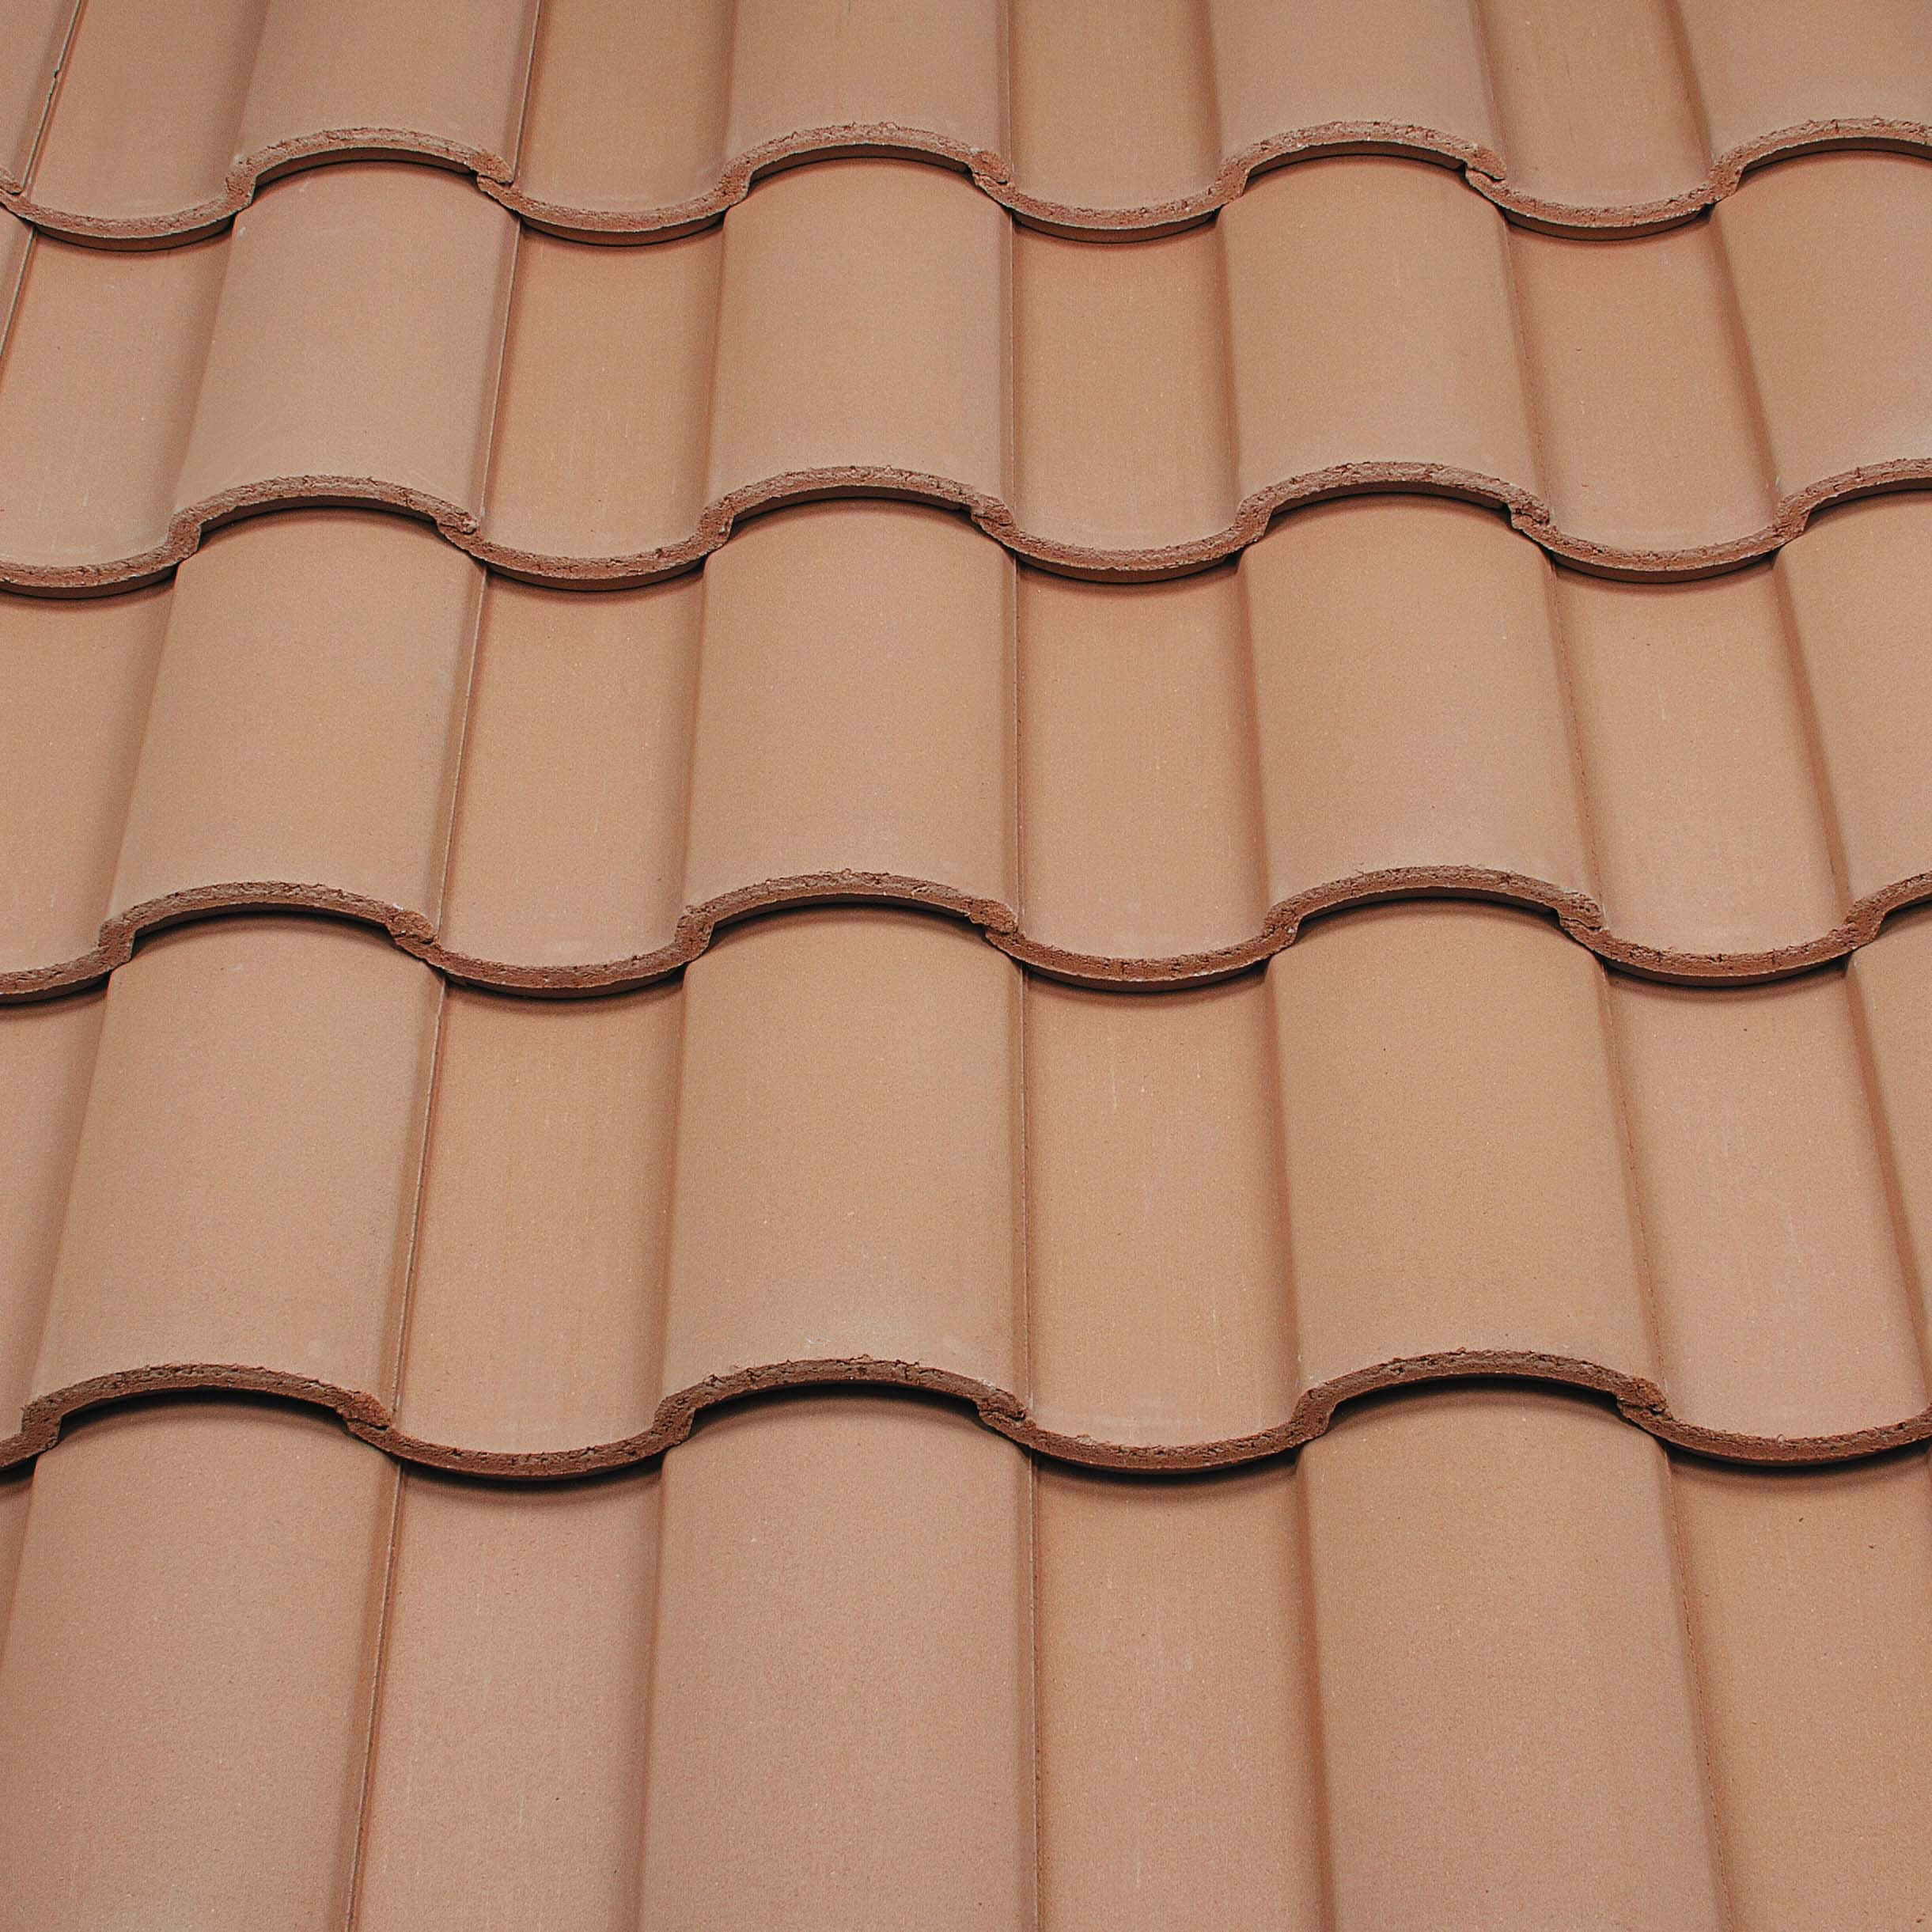 Clay Roof Tiles Installation In Malta Montana Mw Roofers